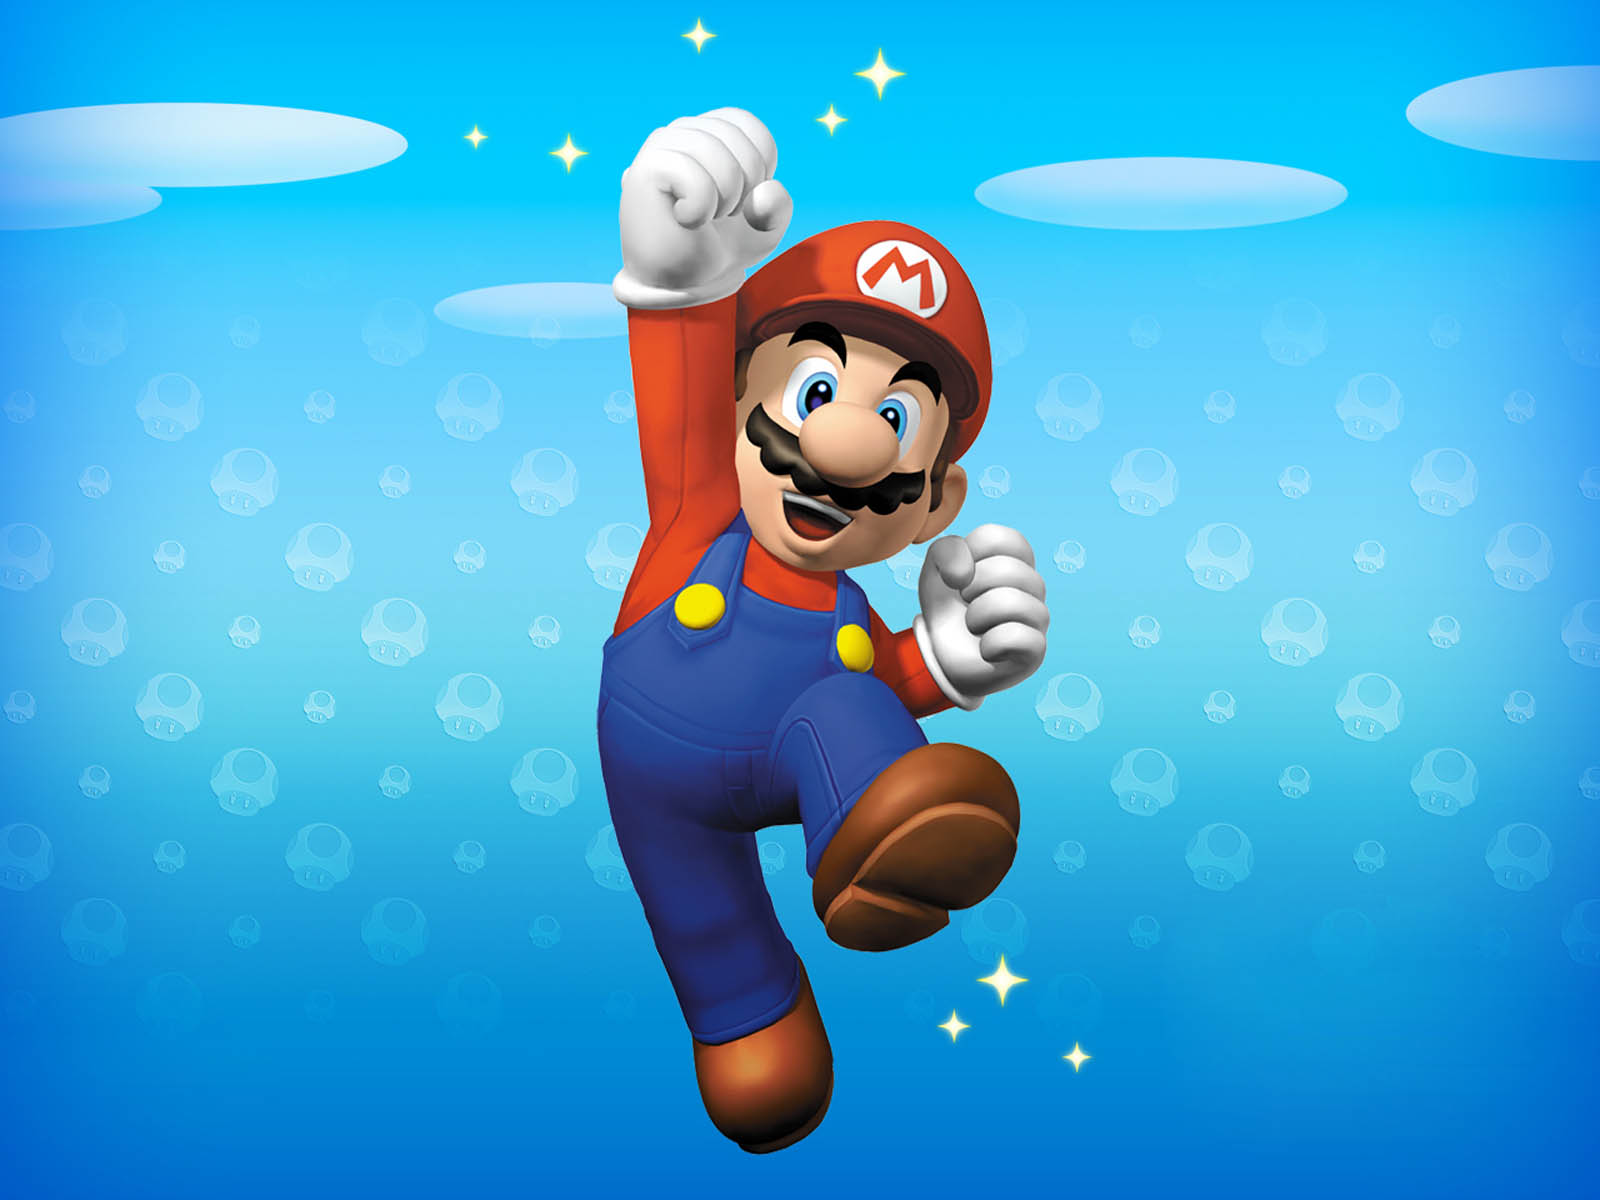 wallpapers: Super Mario Wallpapers